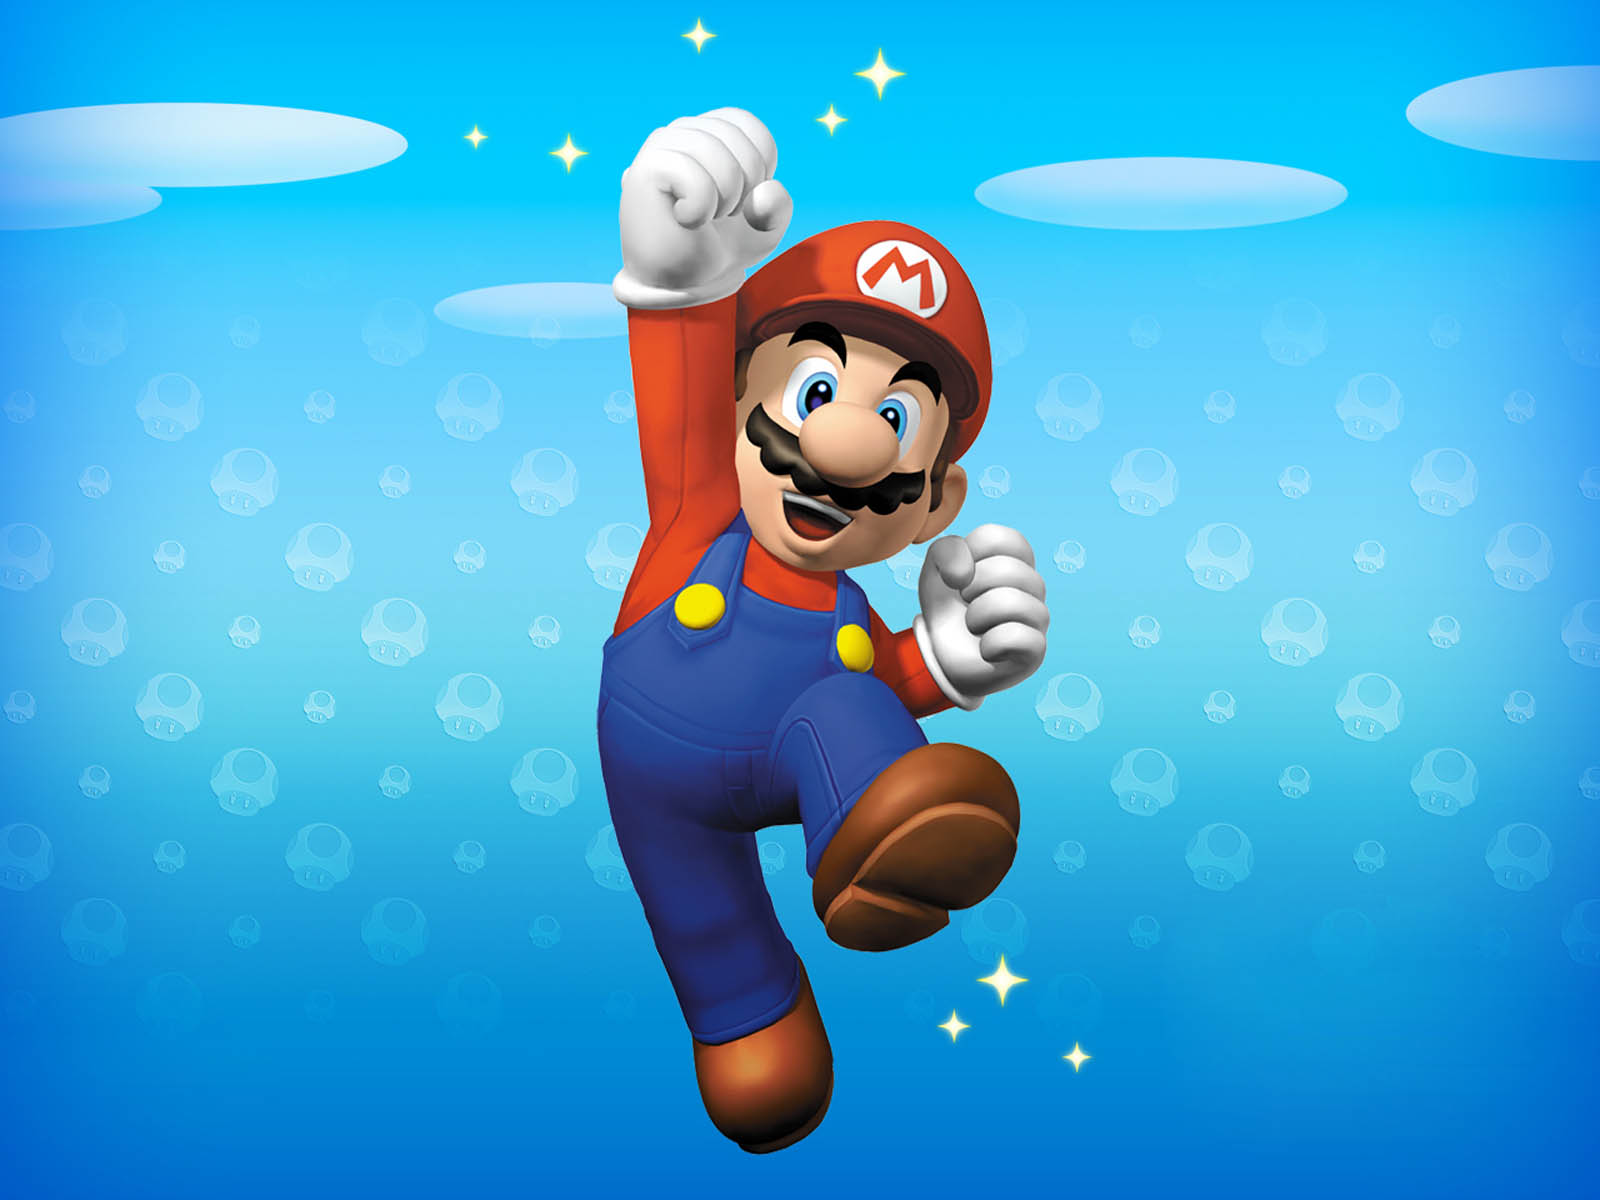 wallpapers: Super Mario Wallpapers